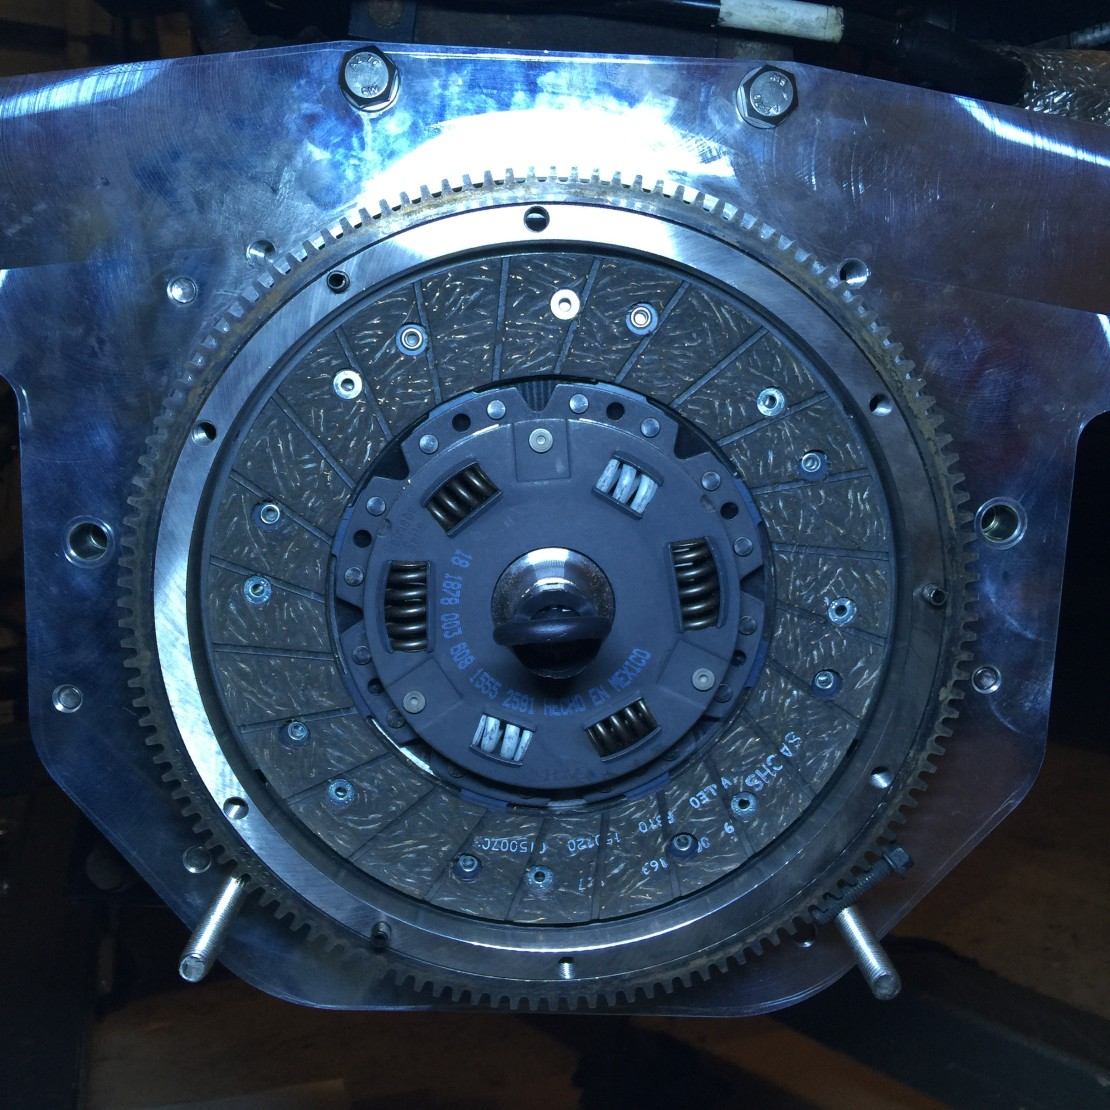 New clutch plate.